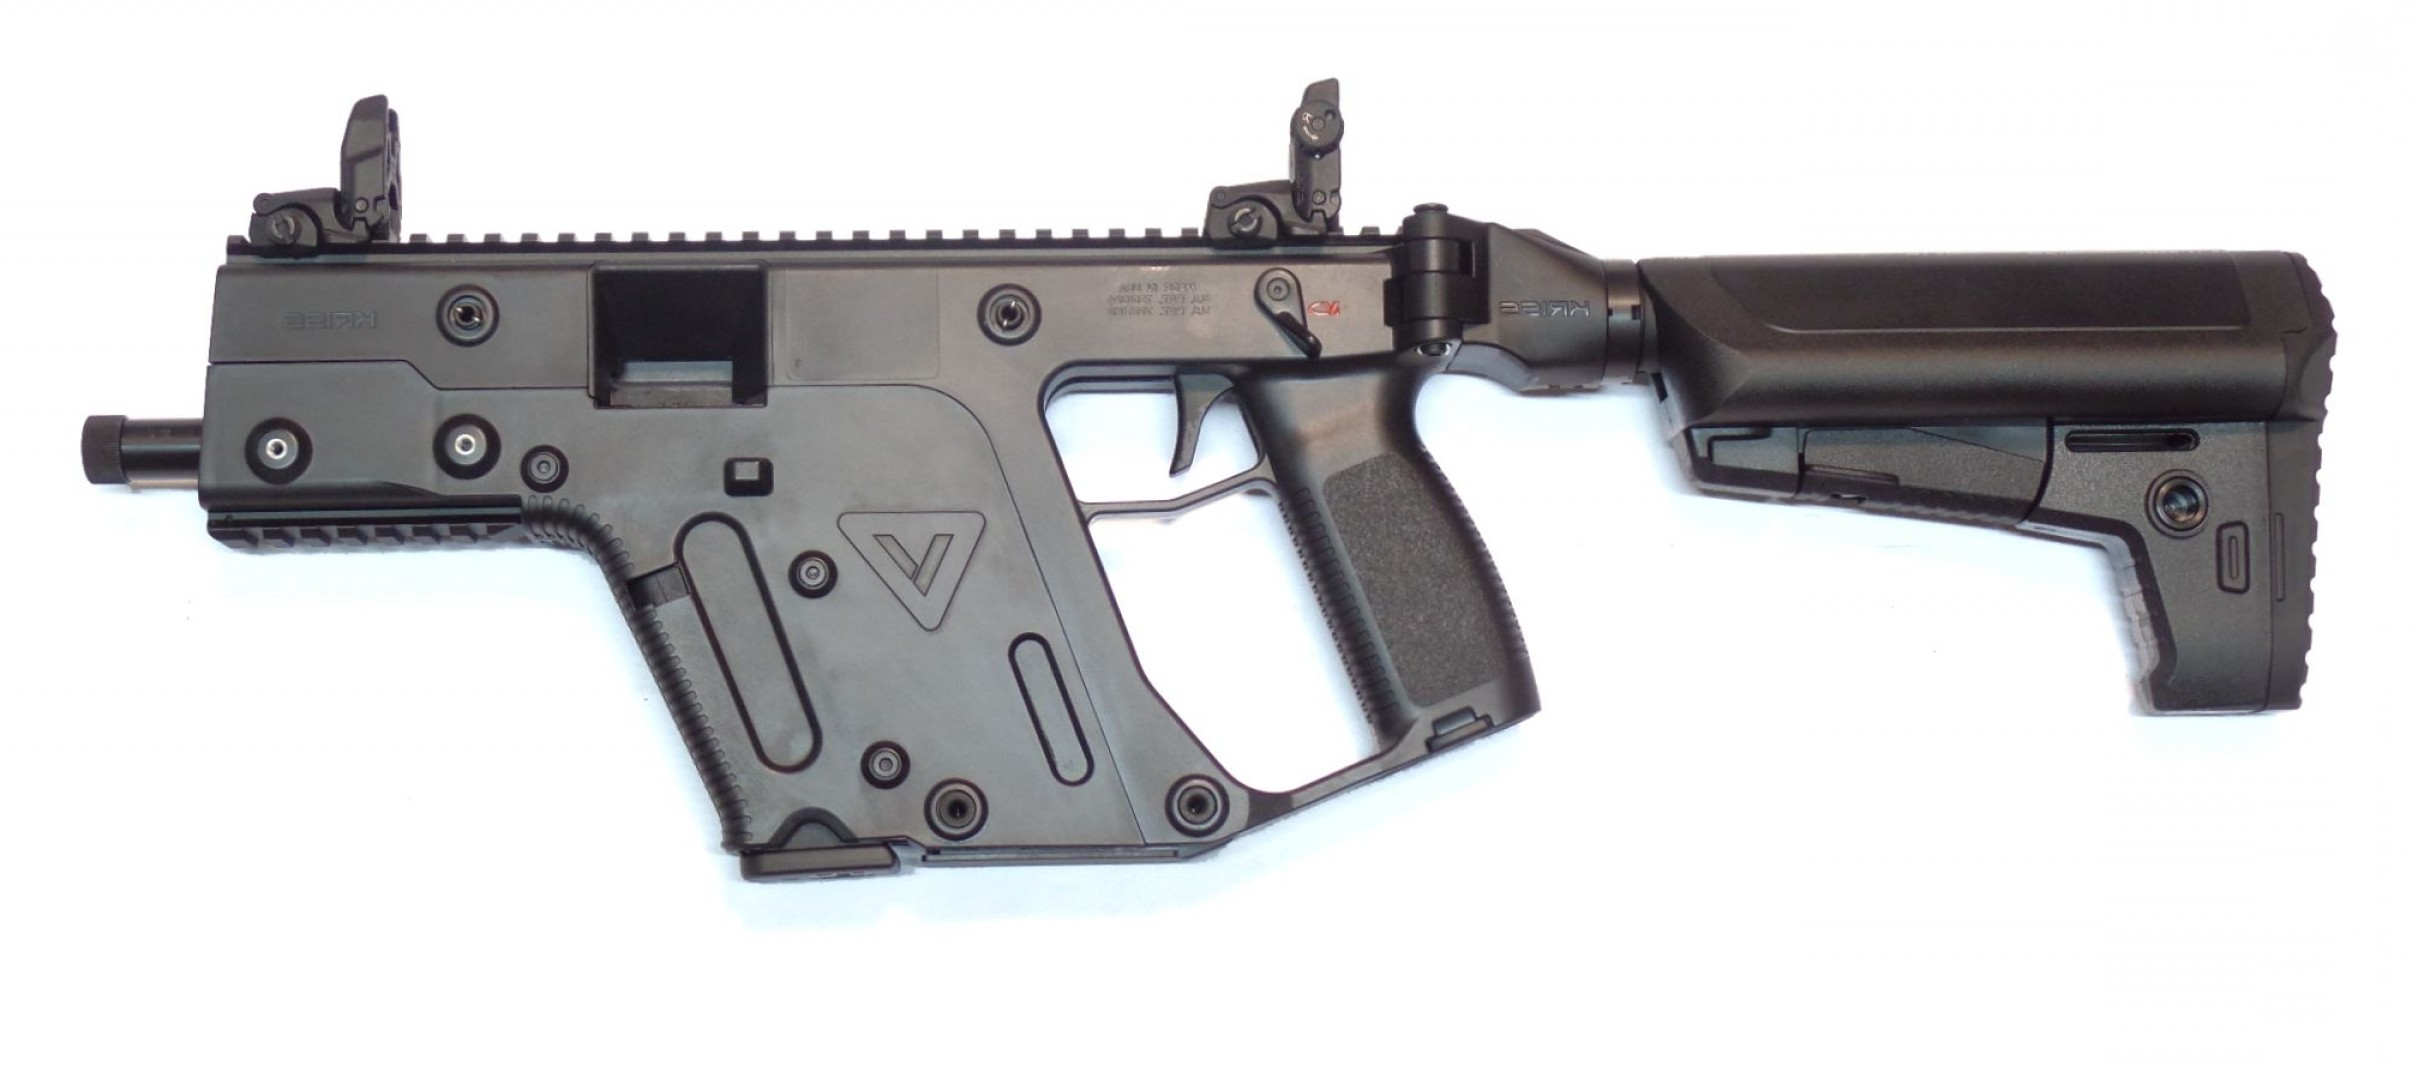 Kriss Vector 45ACP Carbine: Kriss Vector Crb Carbine Calibre Acp